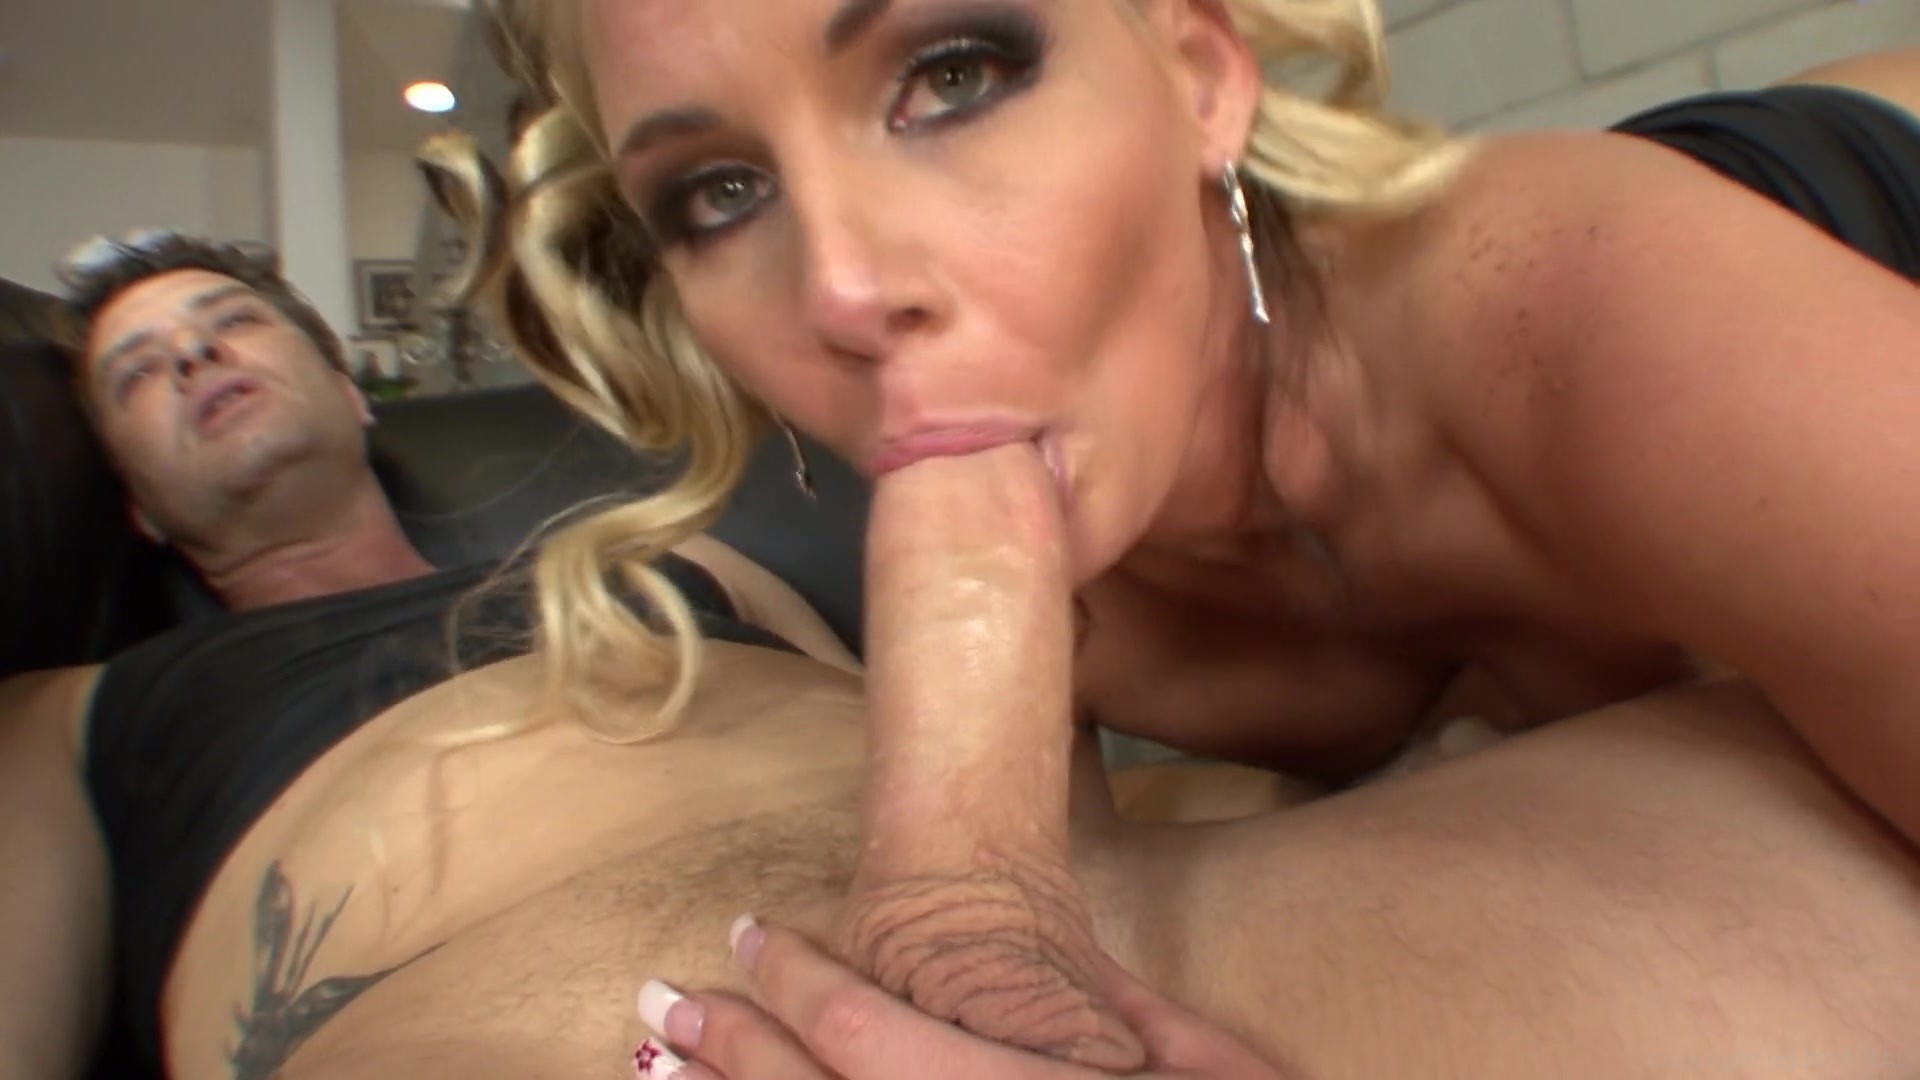 A milf video preview